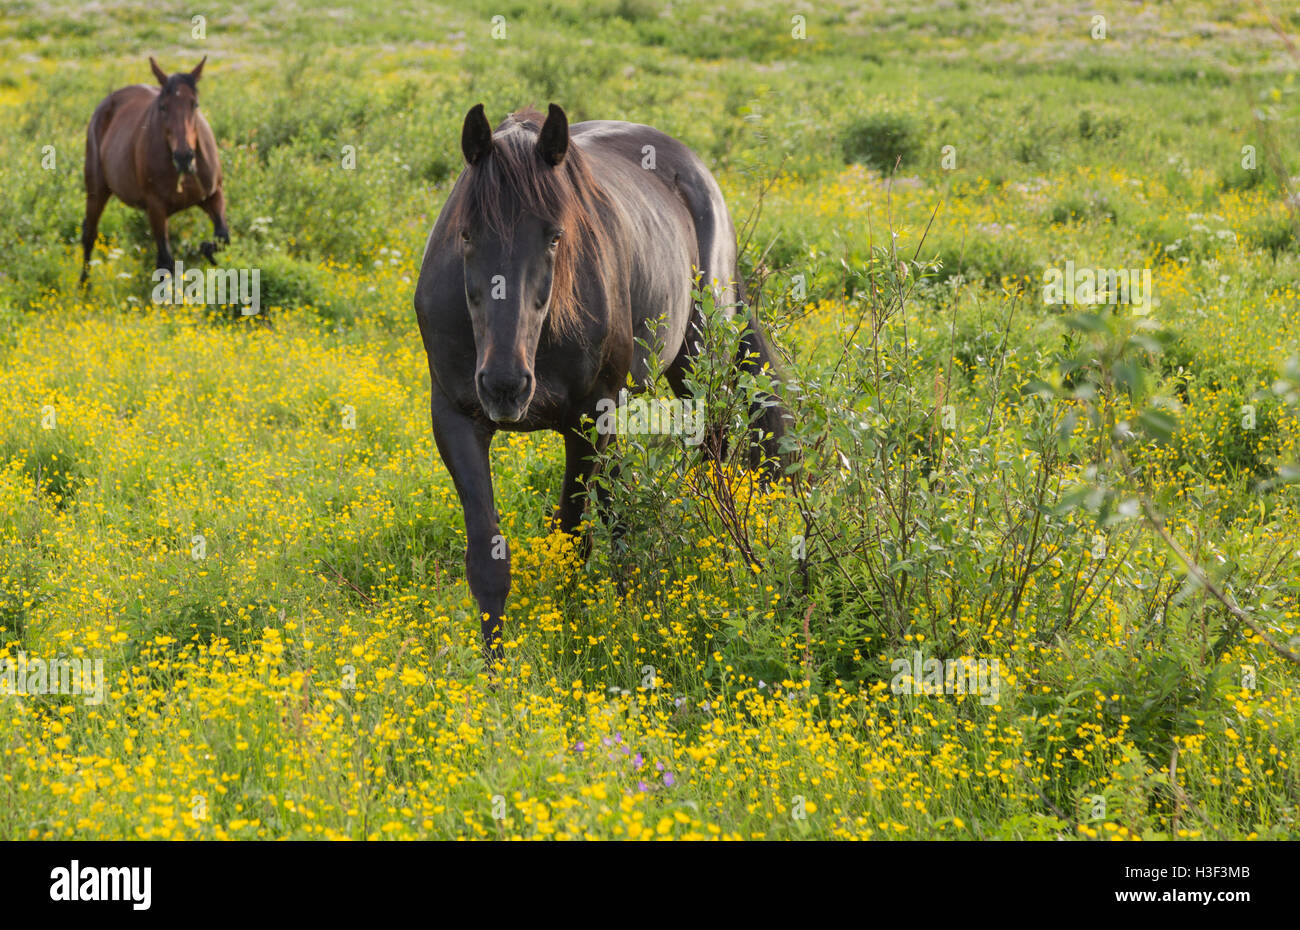 Two warm blood horses walking in a pasture ground among meadow buttercups, Norrbotten Sweden - Stock Image